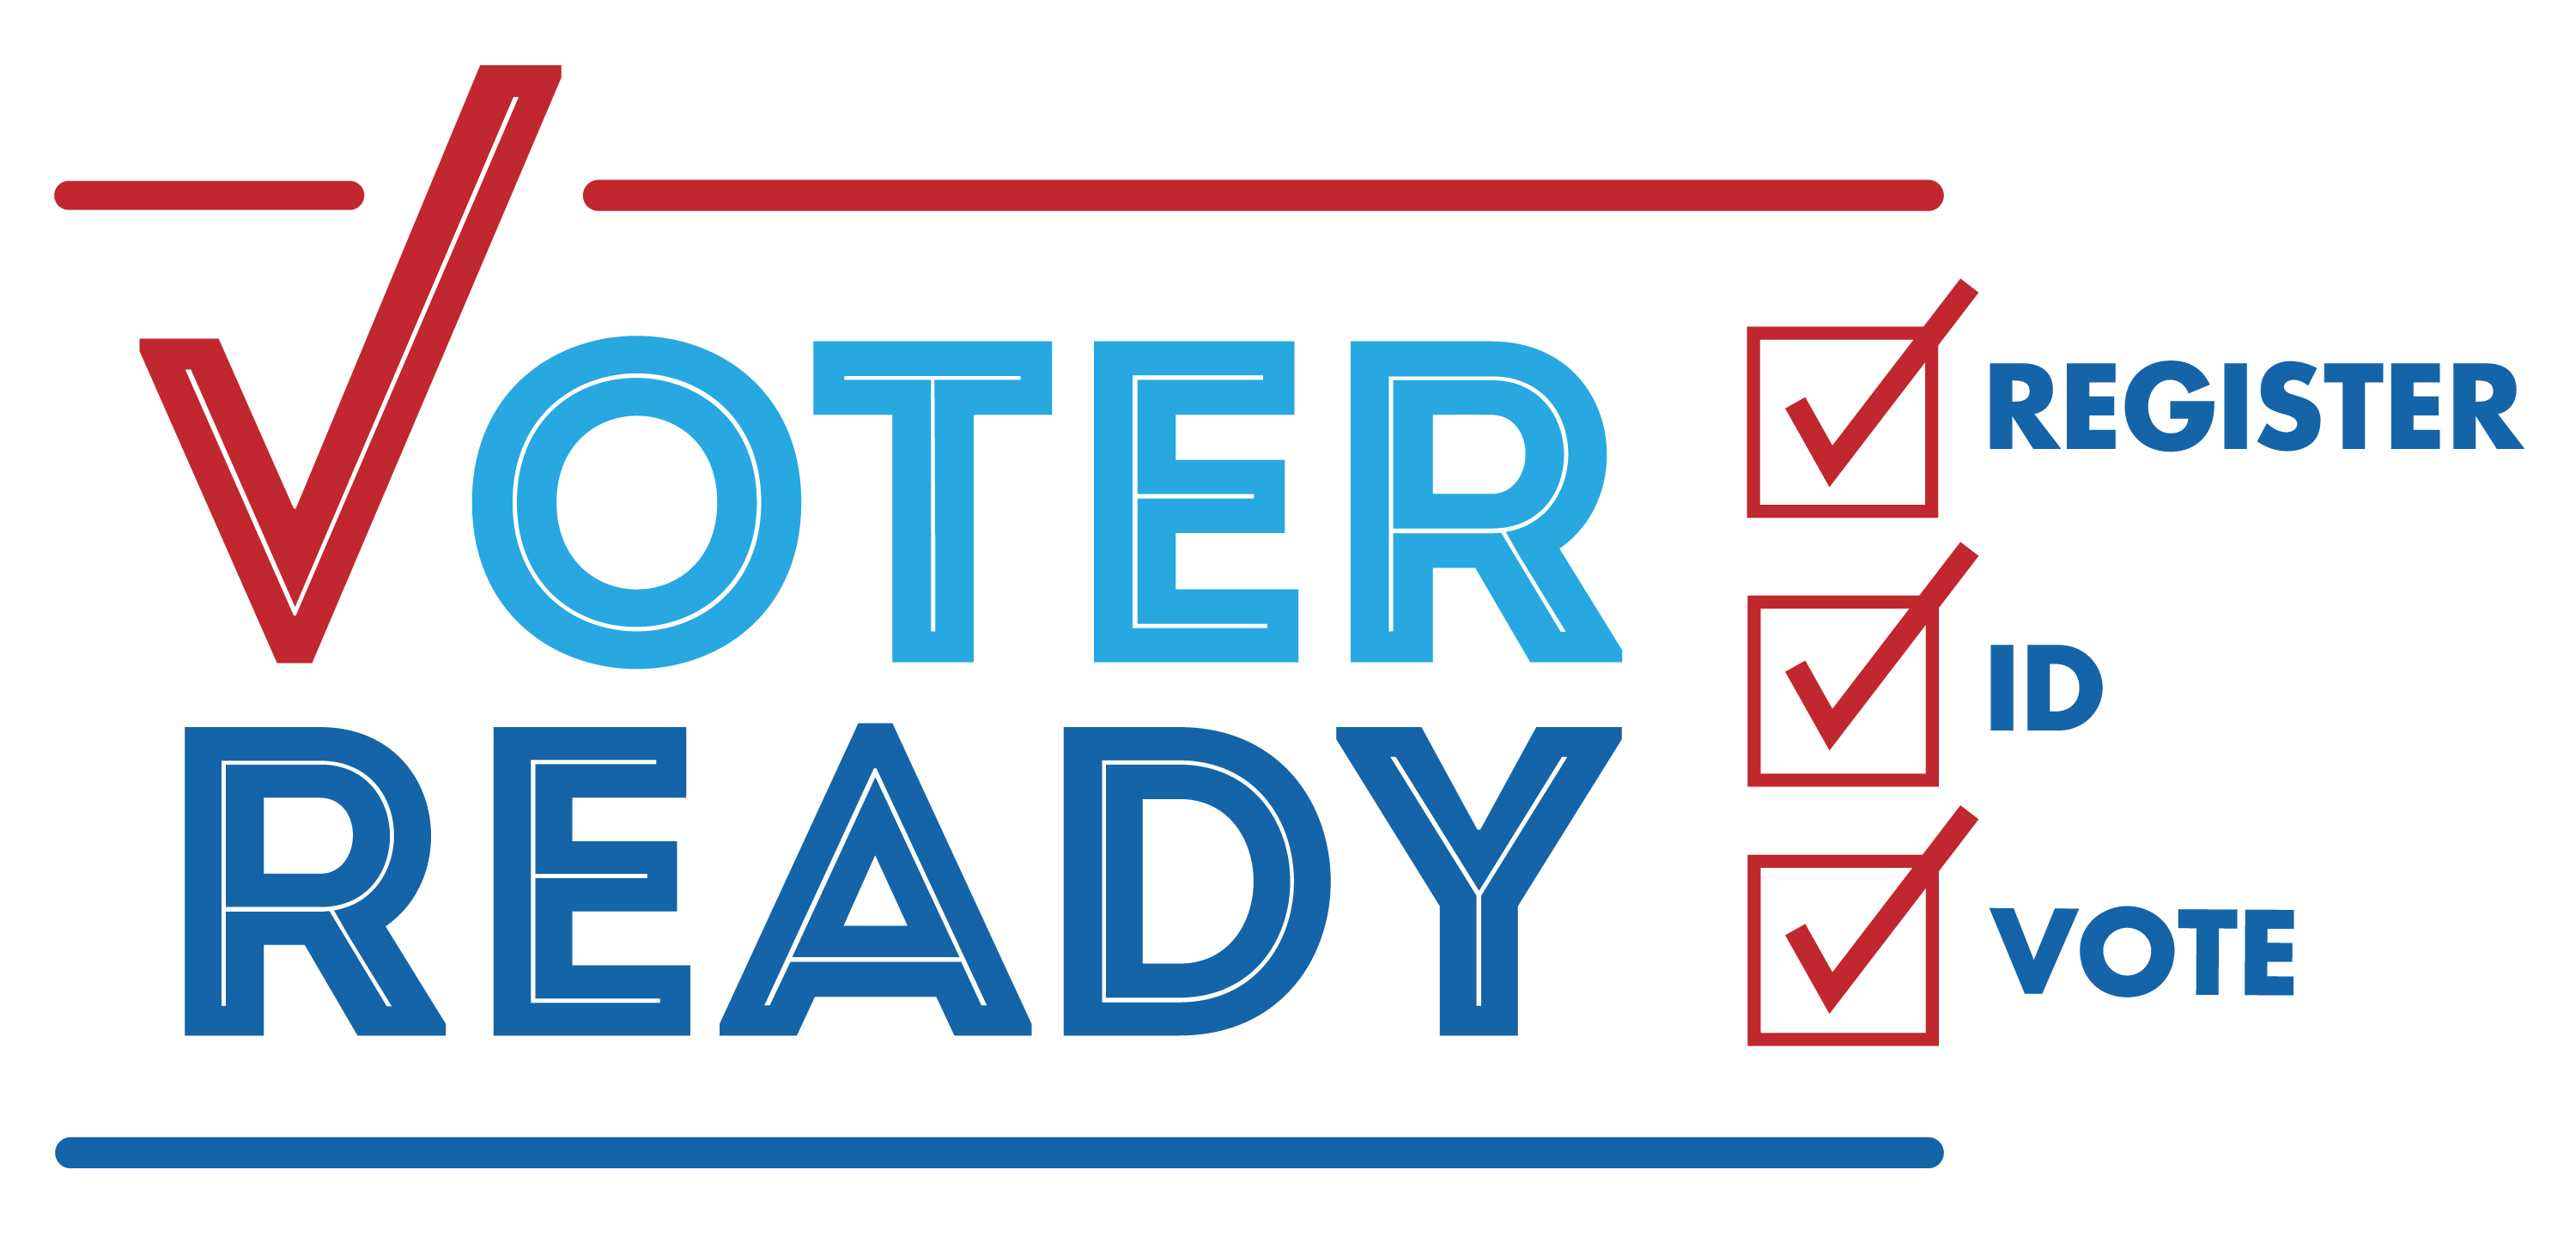 Voter Ready Register ID Vote